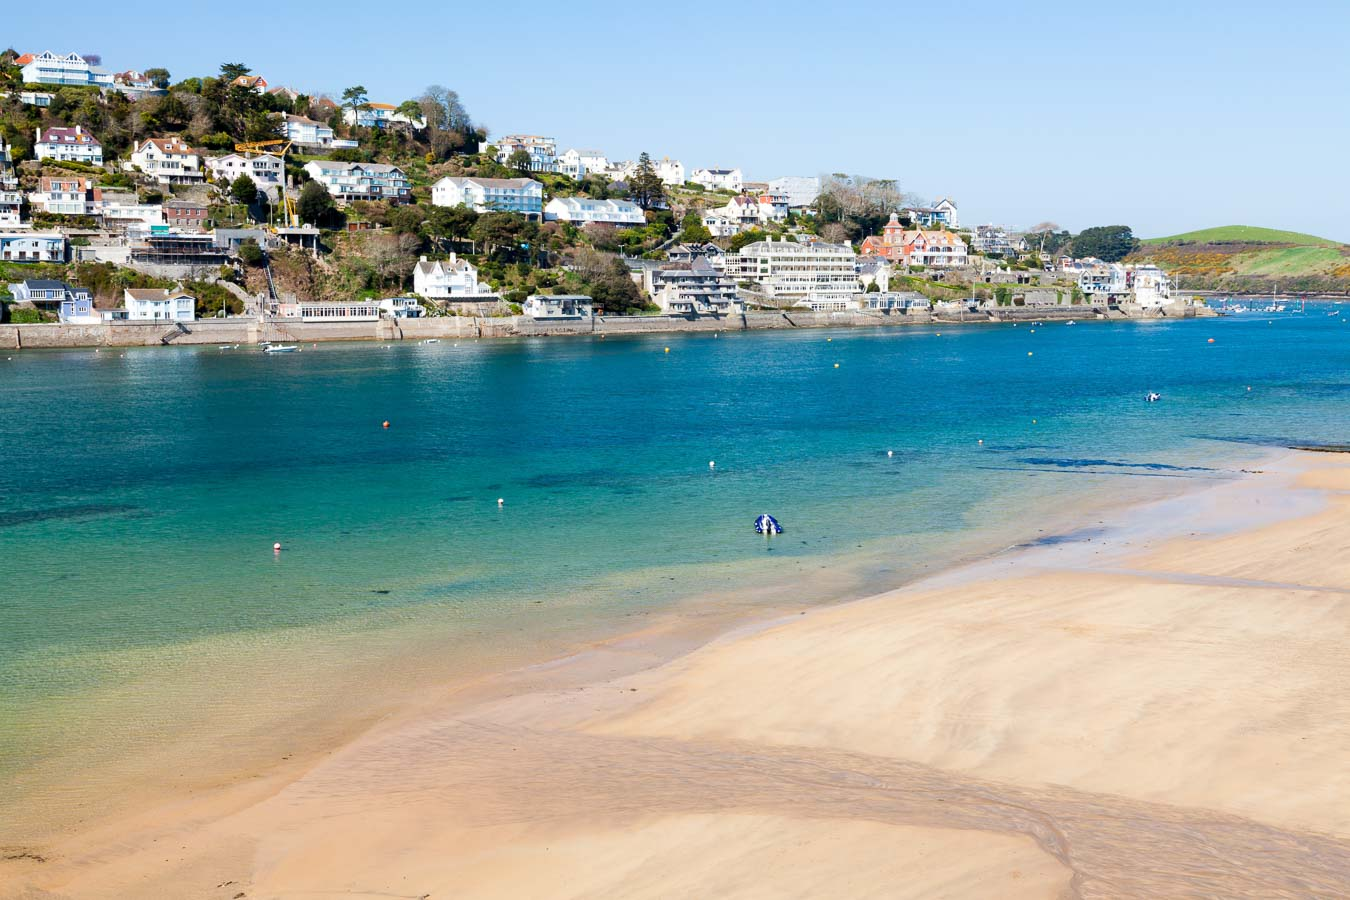 The shore line of Mill Bay looking towards Salcombe, South Devon.